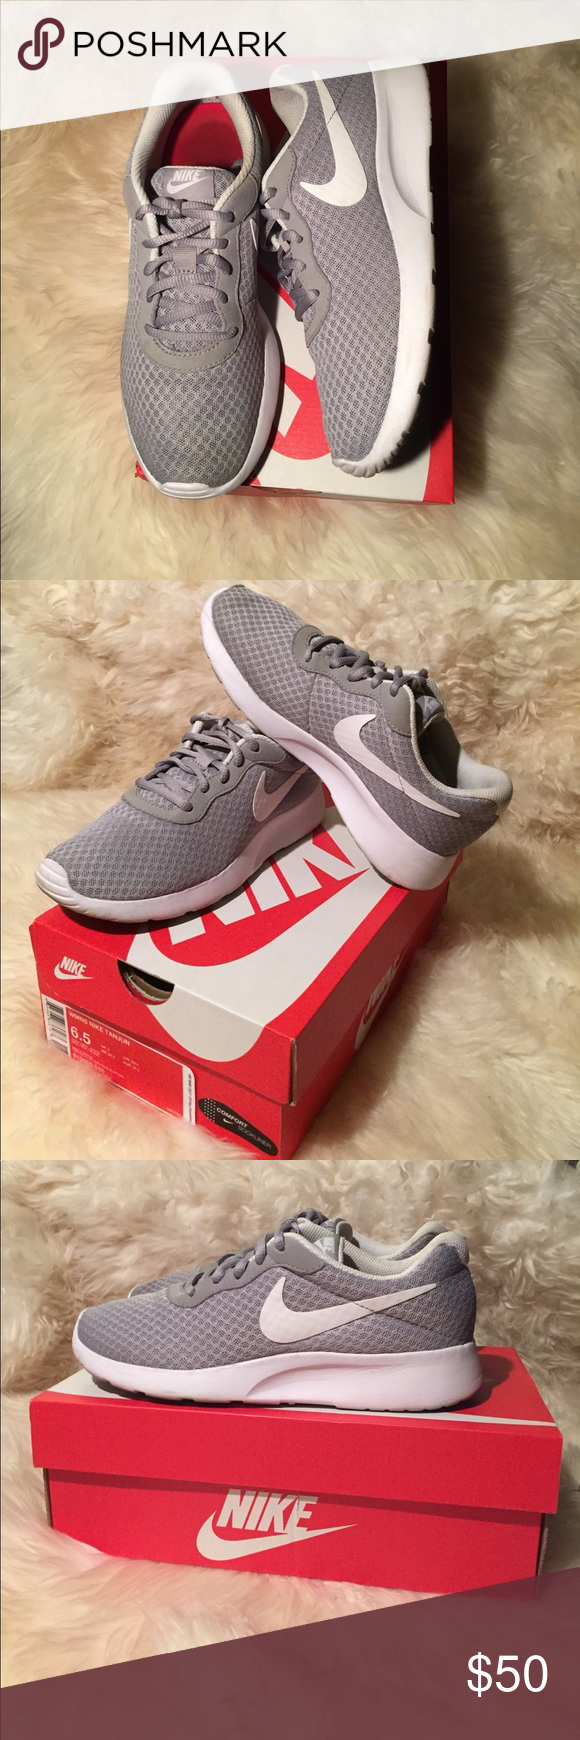 Women's Nike Tanjun Slightly used Wolf Grey/White size 6.5 Nike Tanjuns.  Excellent addition